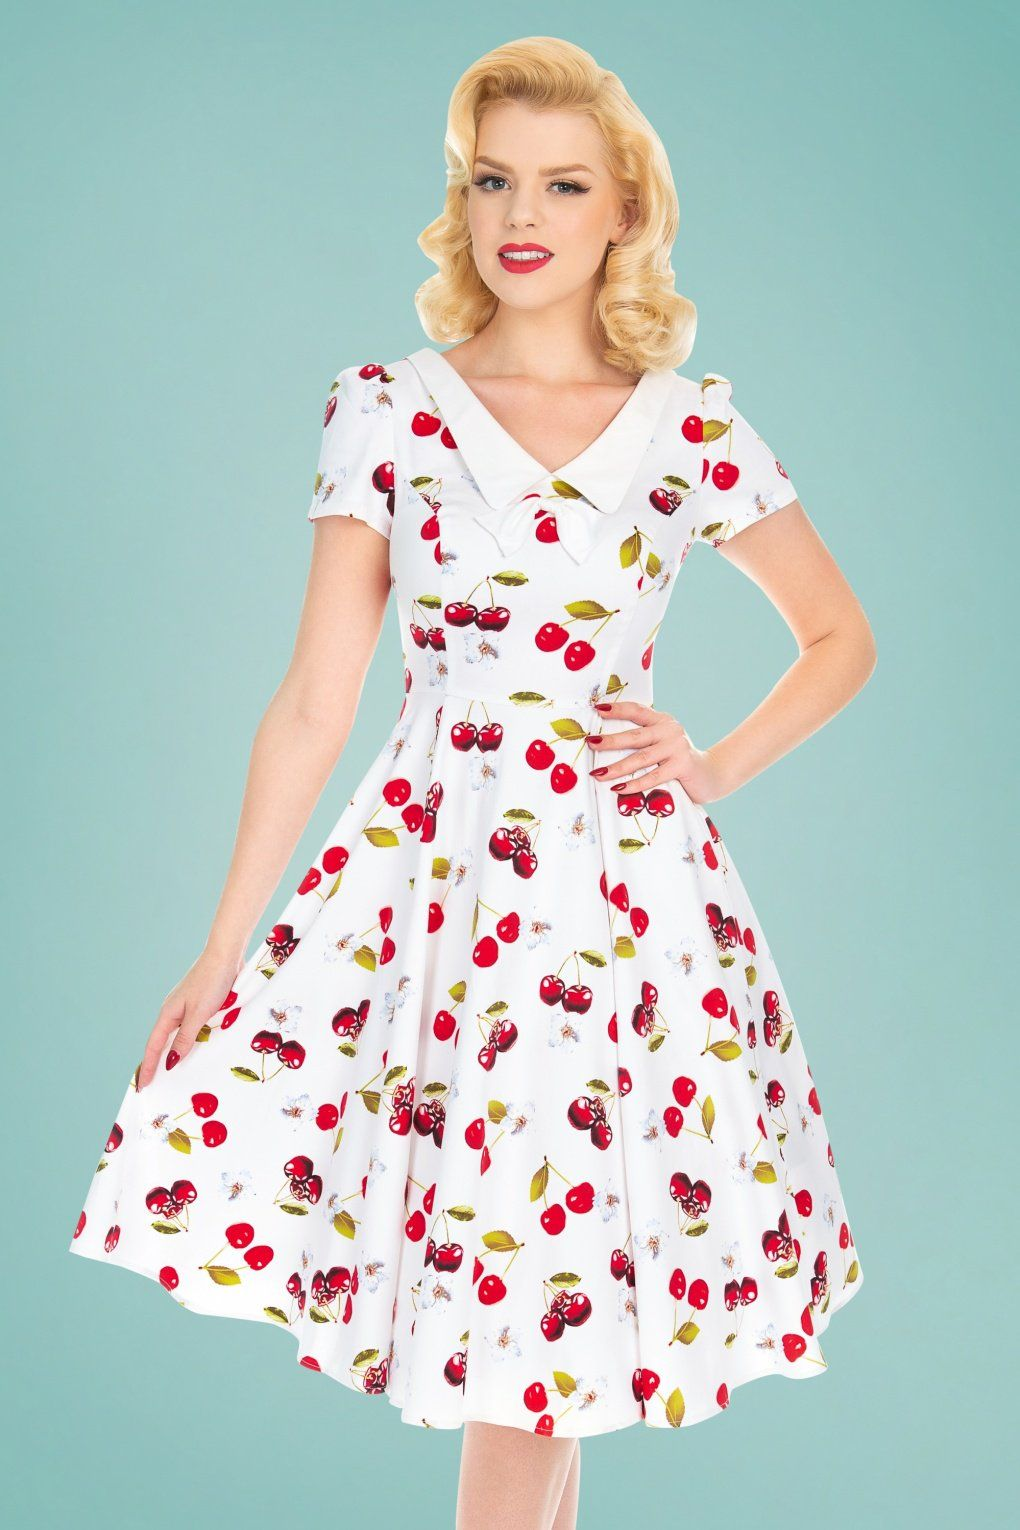 50s Cherry On Top Swing Dress In White Swing Dress Vintage Inspired Fashion Retro Vintage Dresses [ 1530 x 1020 Pixel ]